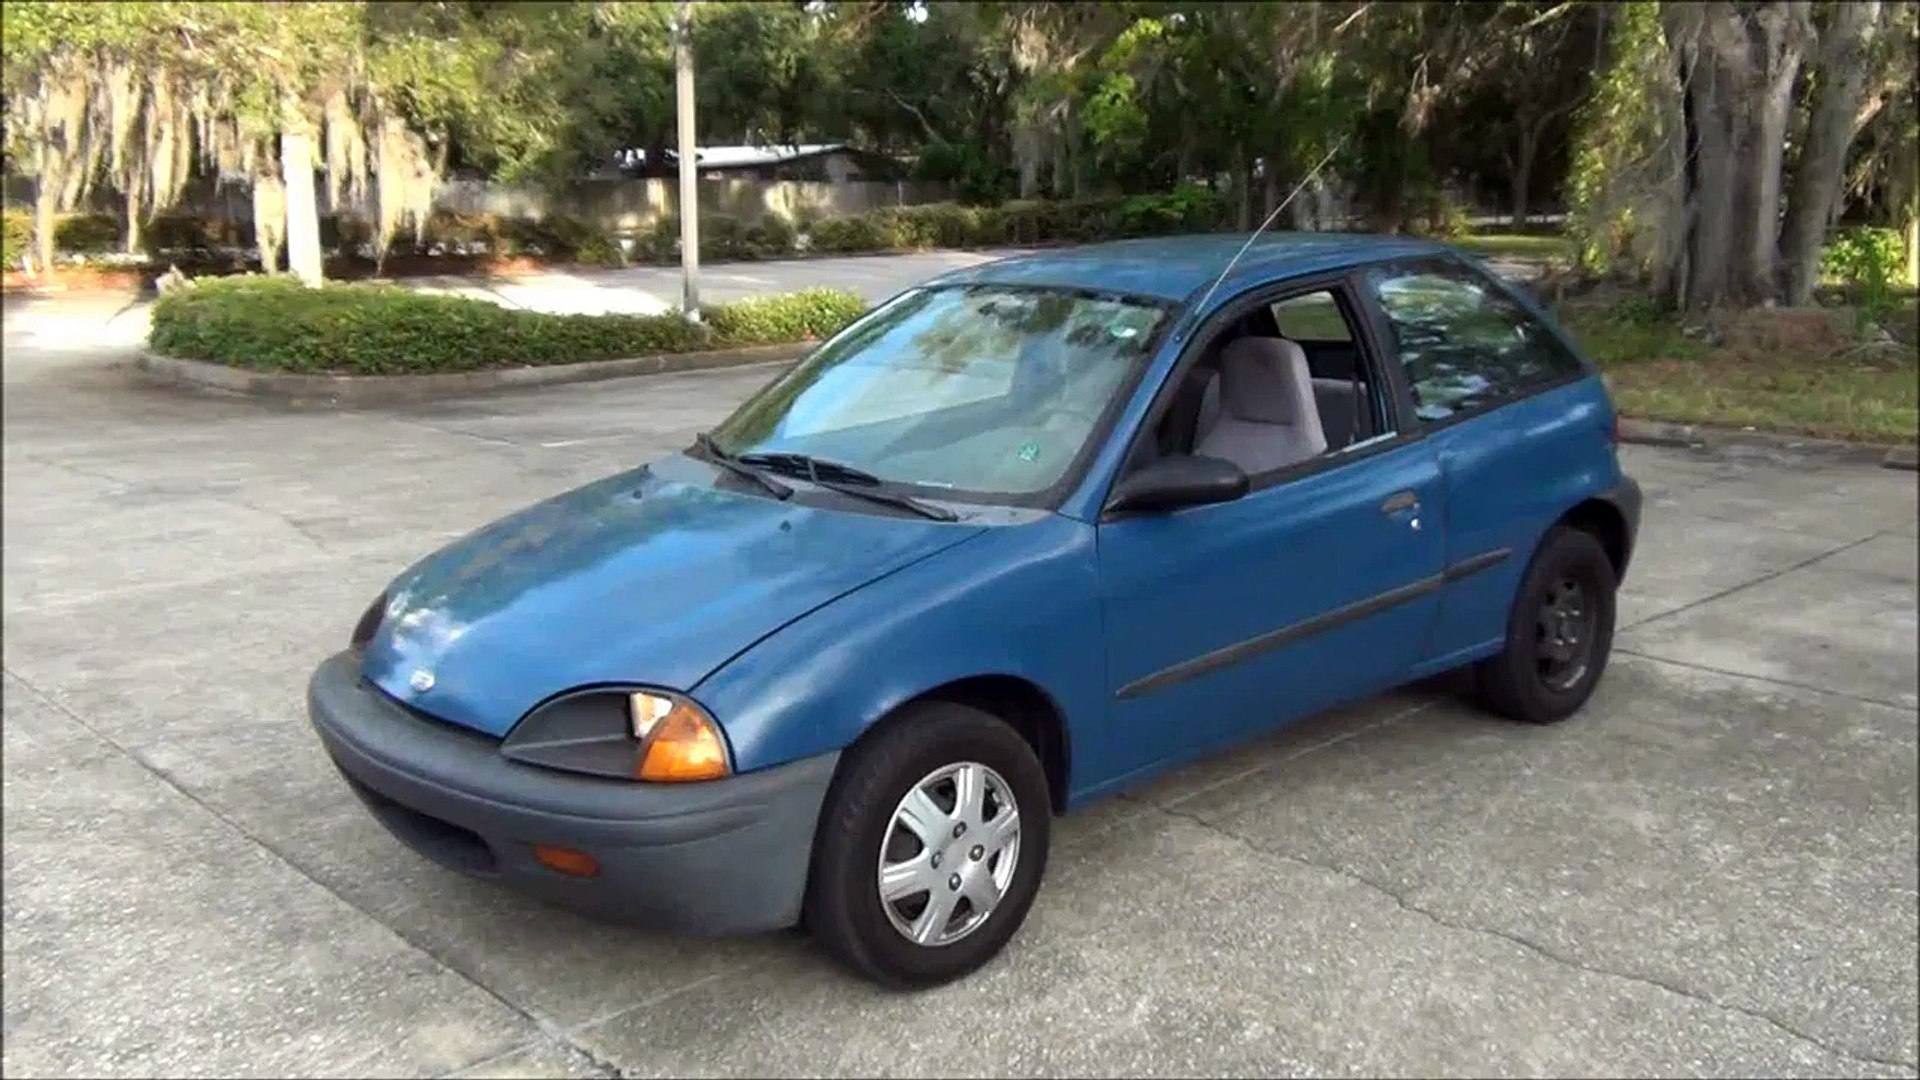 97 CHEVY GEO METRO LSI 3 CYLINDER 5 SPEED W/TRAILER HITCH 52 47 MPG GOING  52-57 MPH- 99 2 MILE TRIP